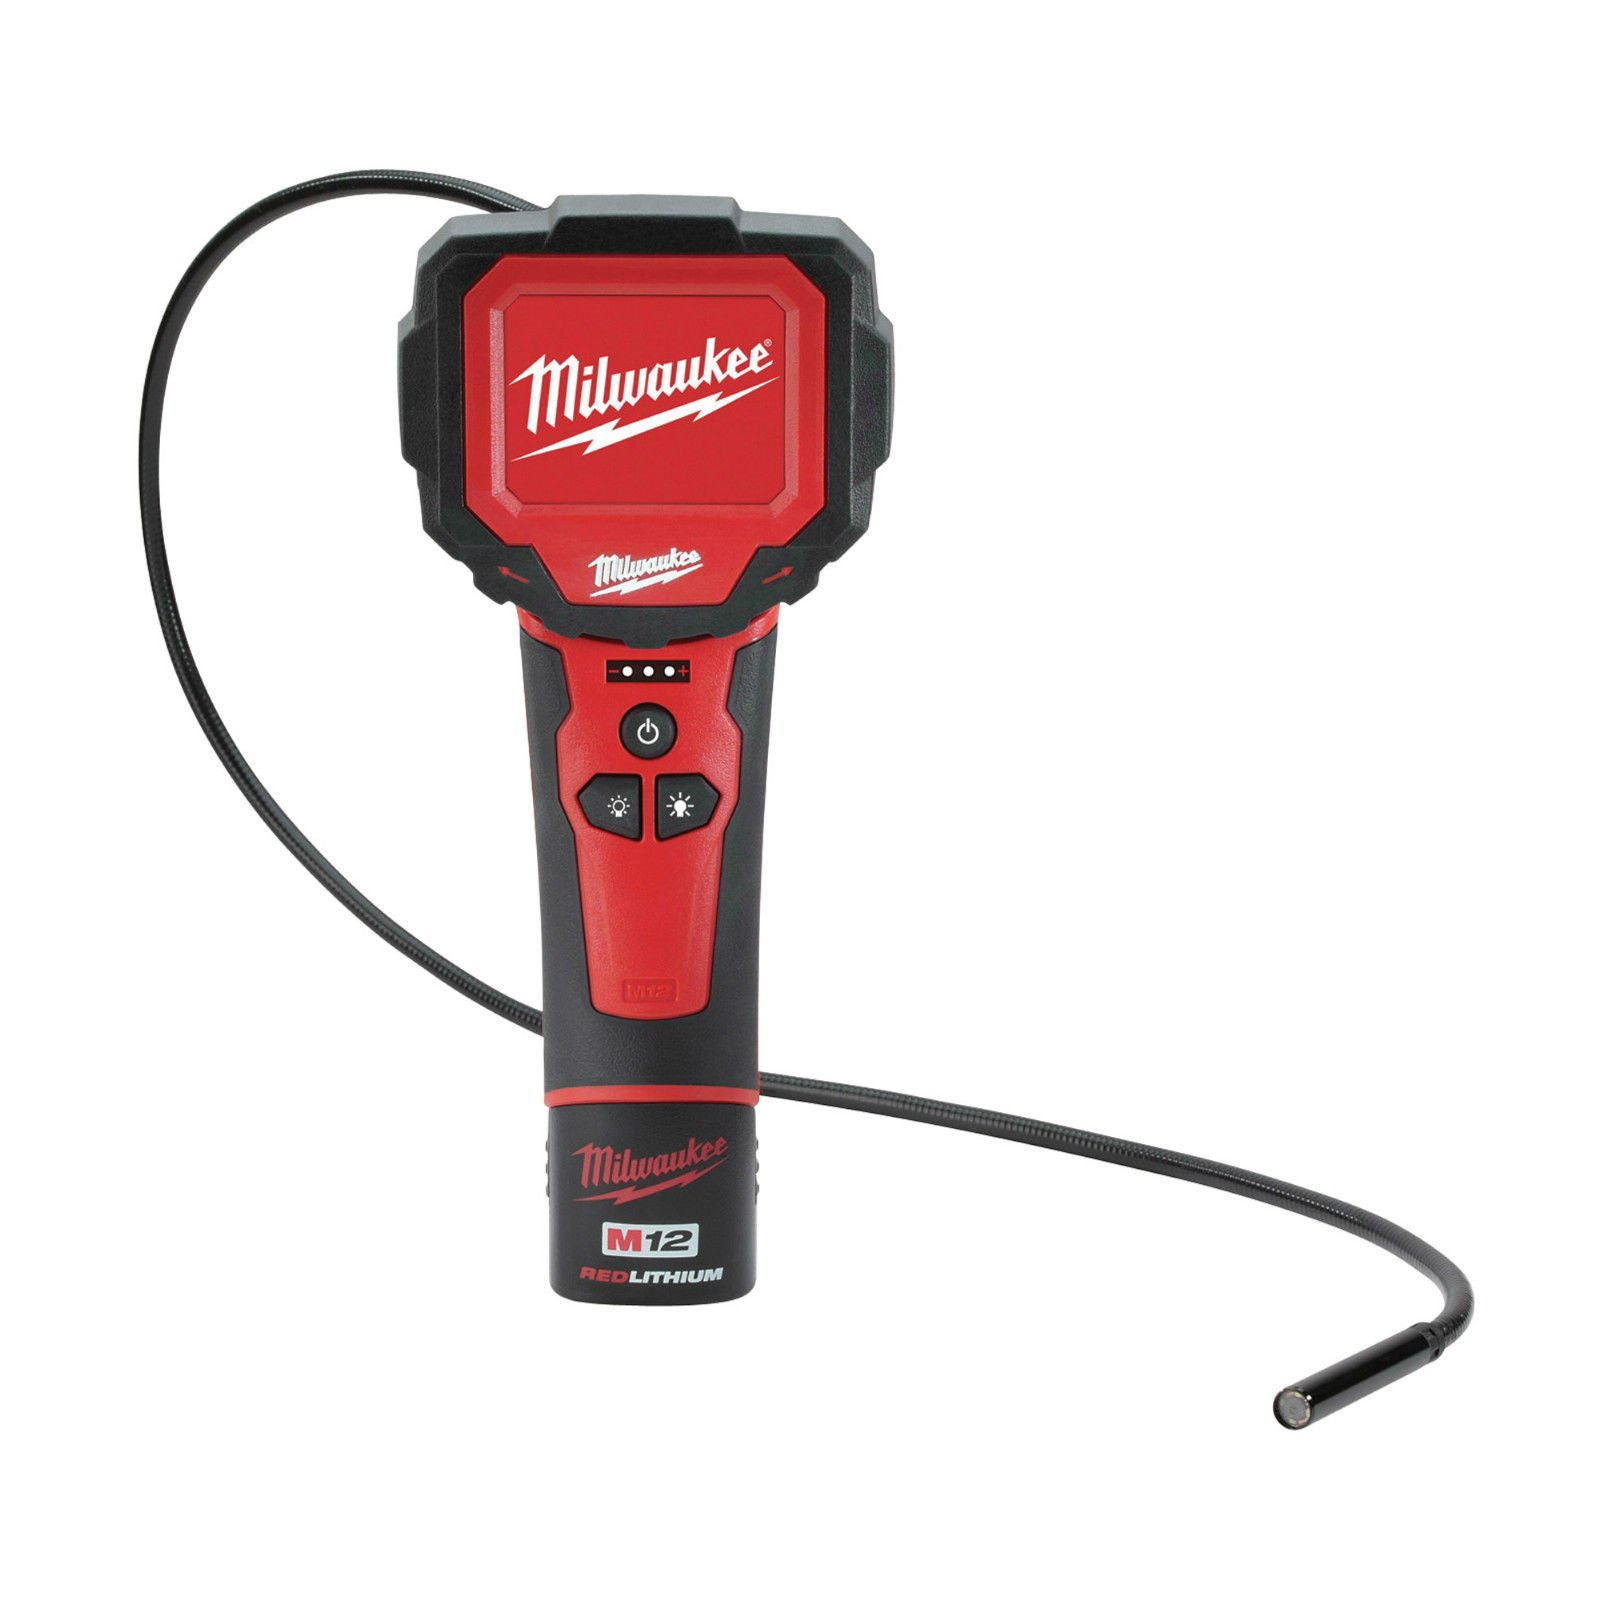 Milwaukee 2313-21 M-spector 360 Cordless Camera Video Inspection Kit System by Milwaukee Electric Tools